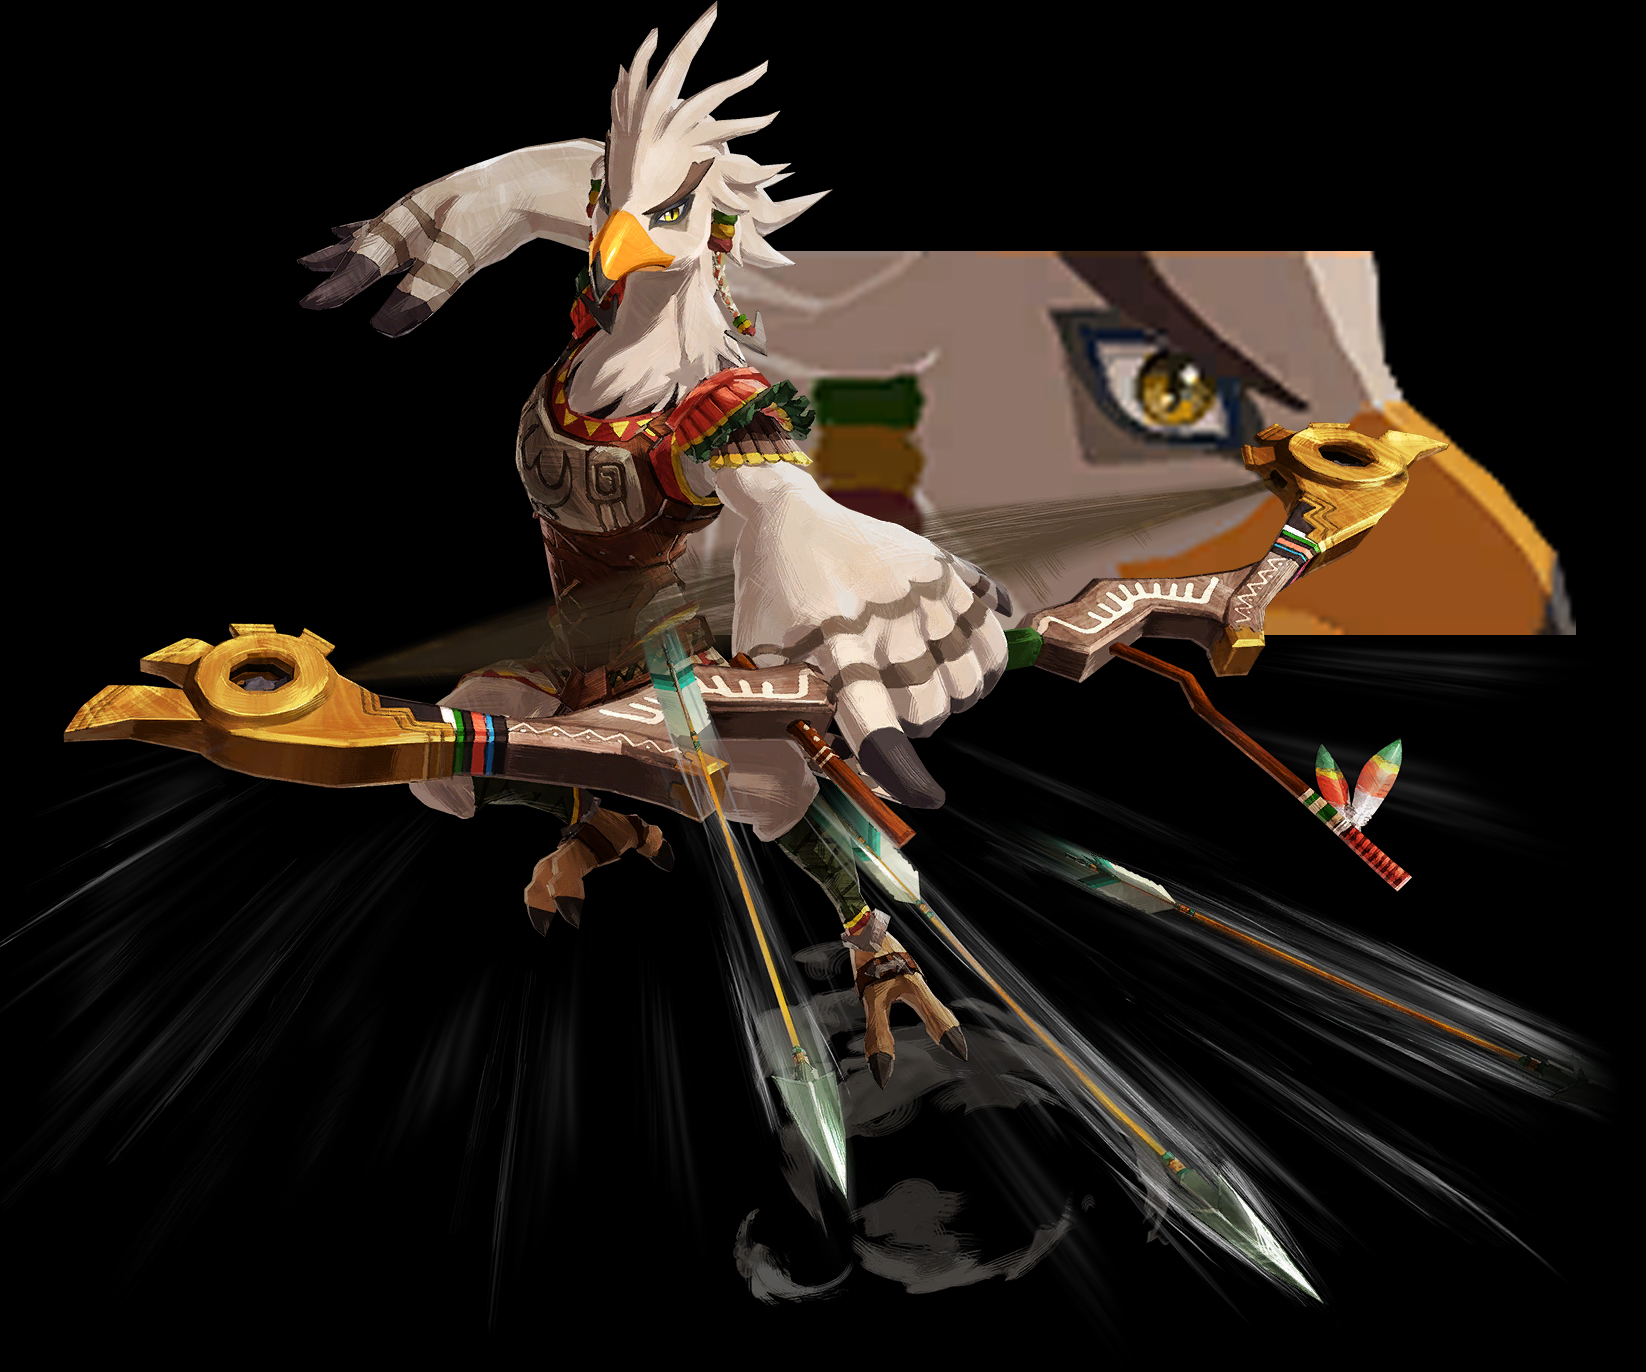 Hyrule Warriors: Age of Calamity — Teba